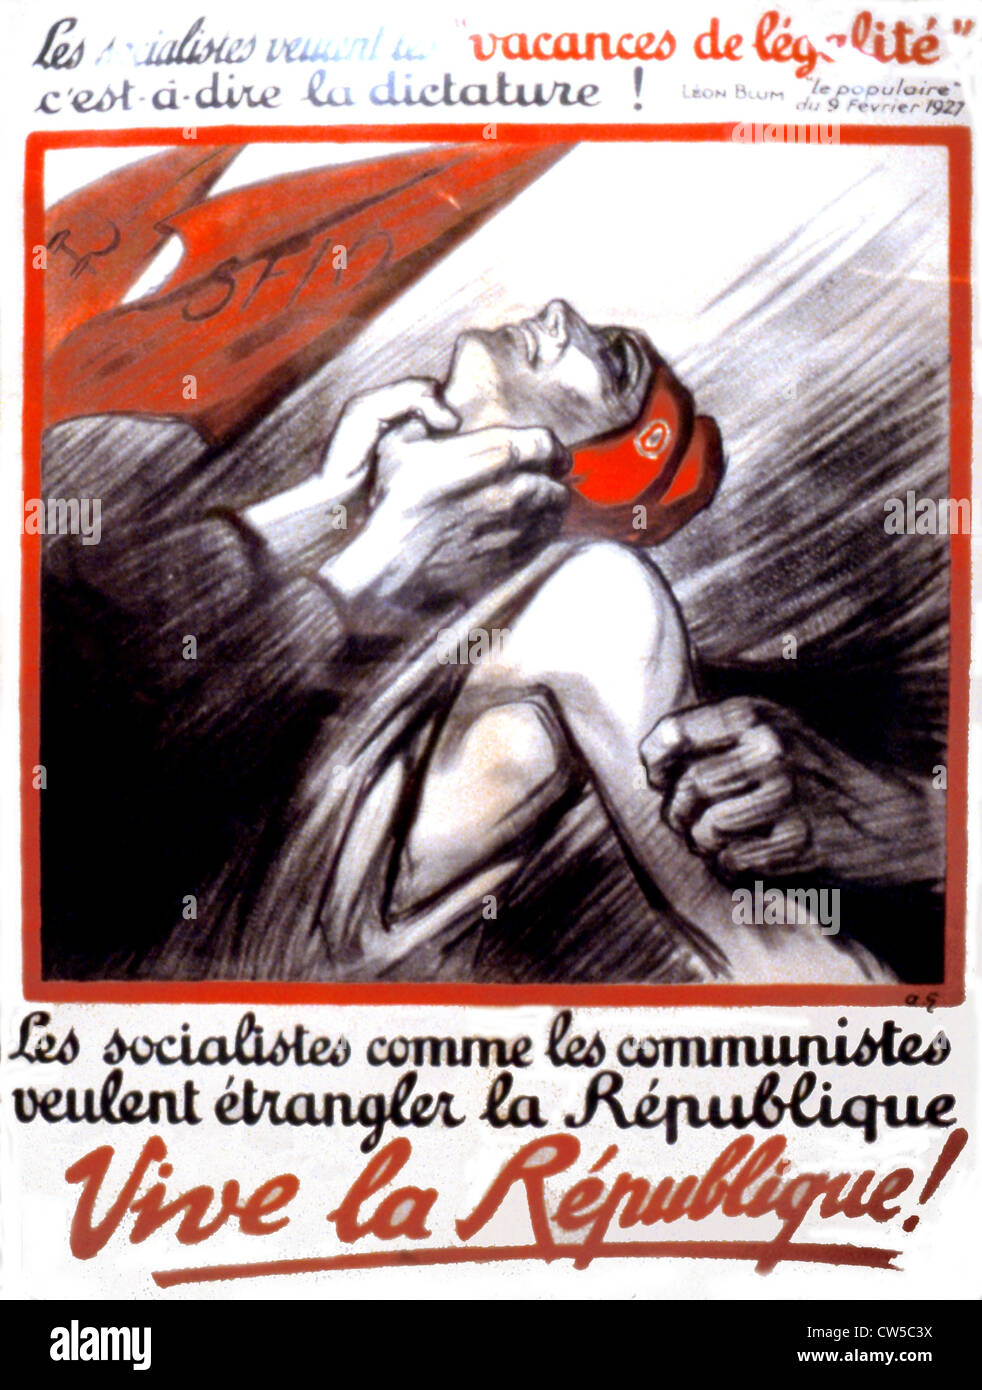 Anti-leftist propaganda poster. 'The Socialists, like the Communists, want to strangle the Republic' - Stock Image